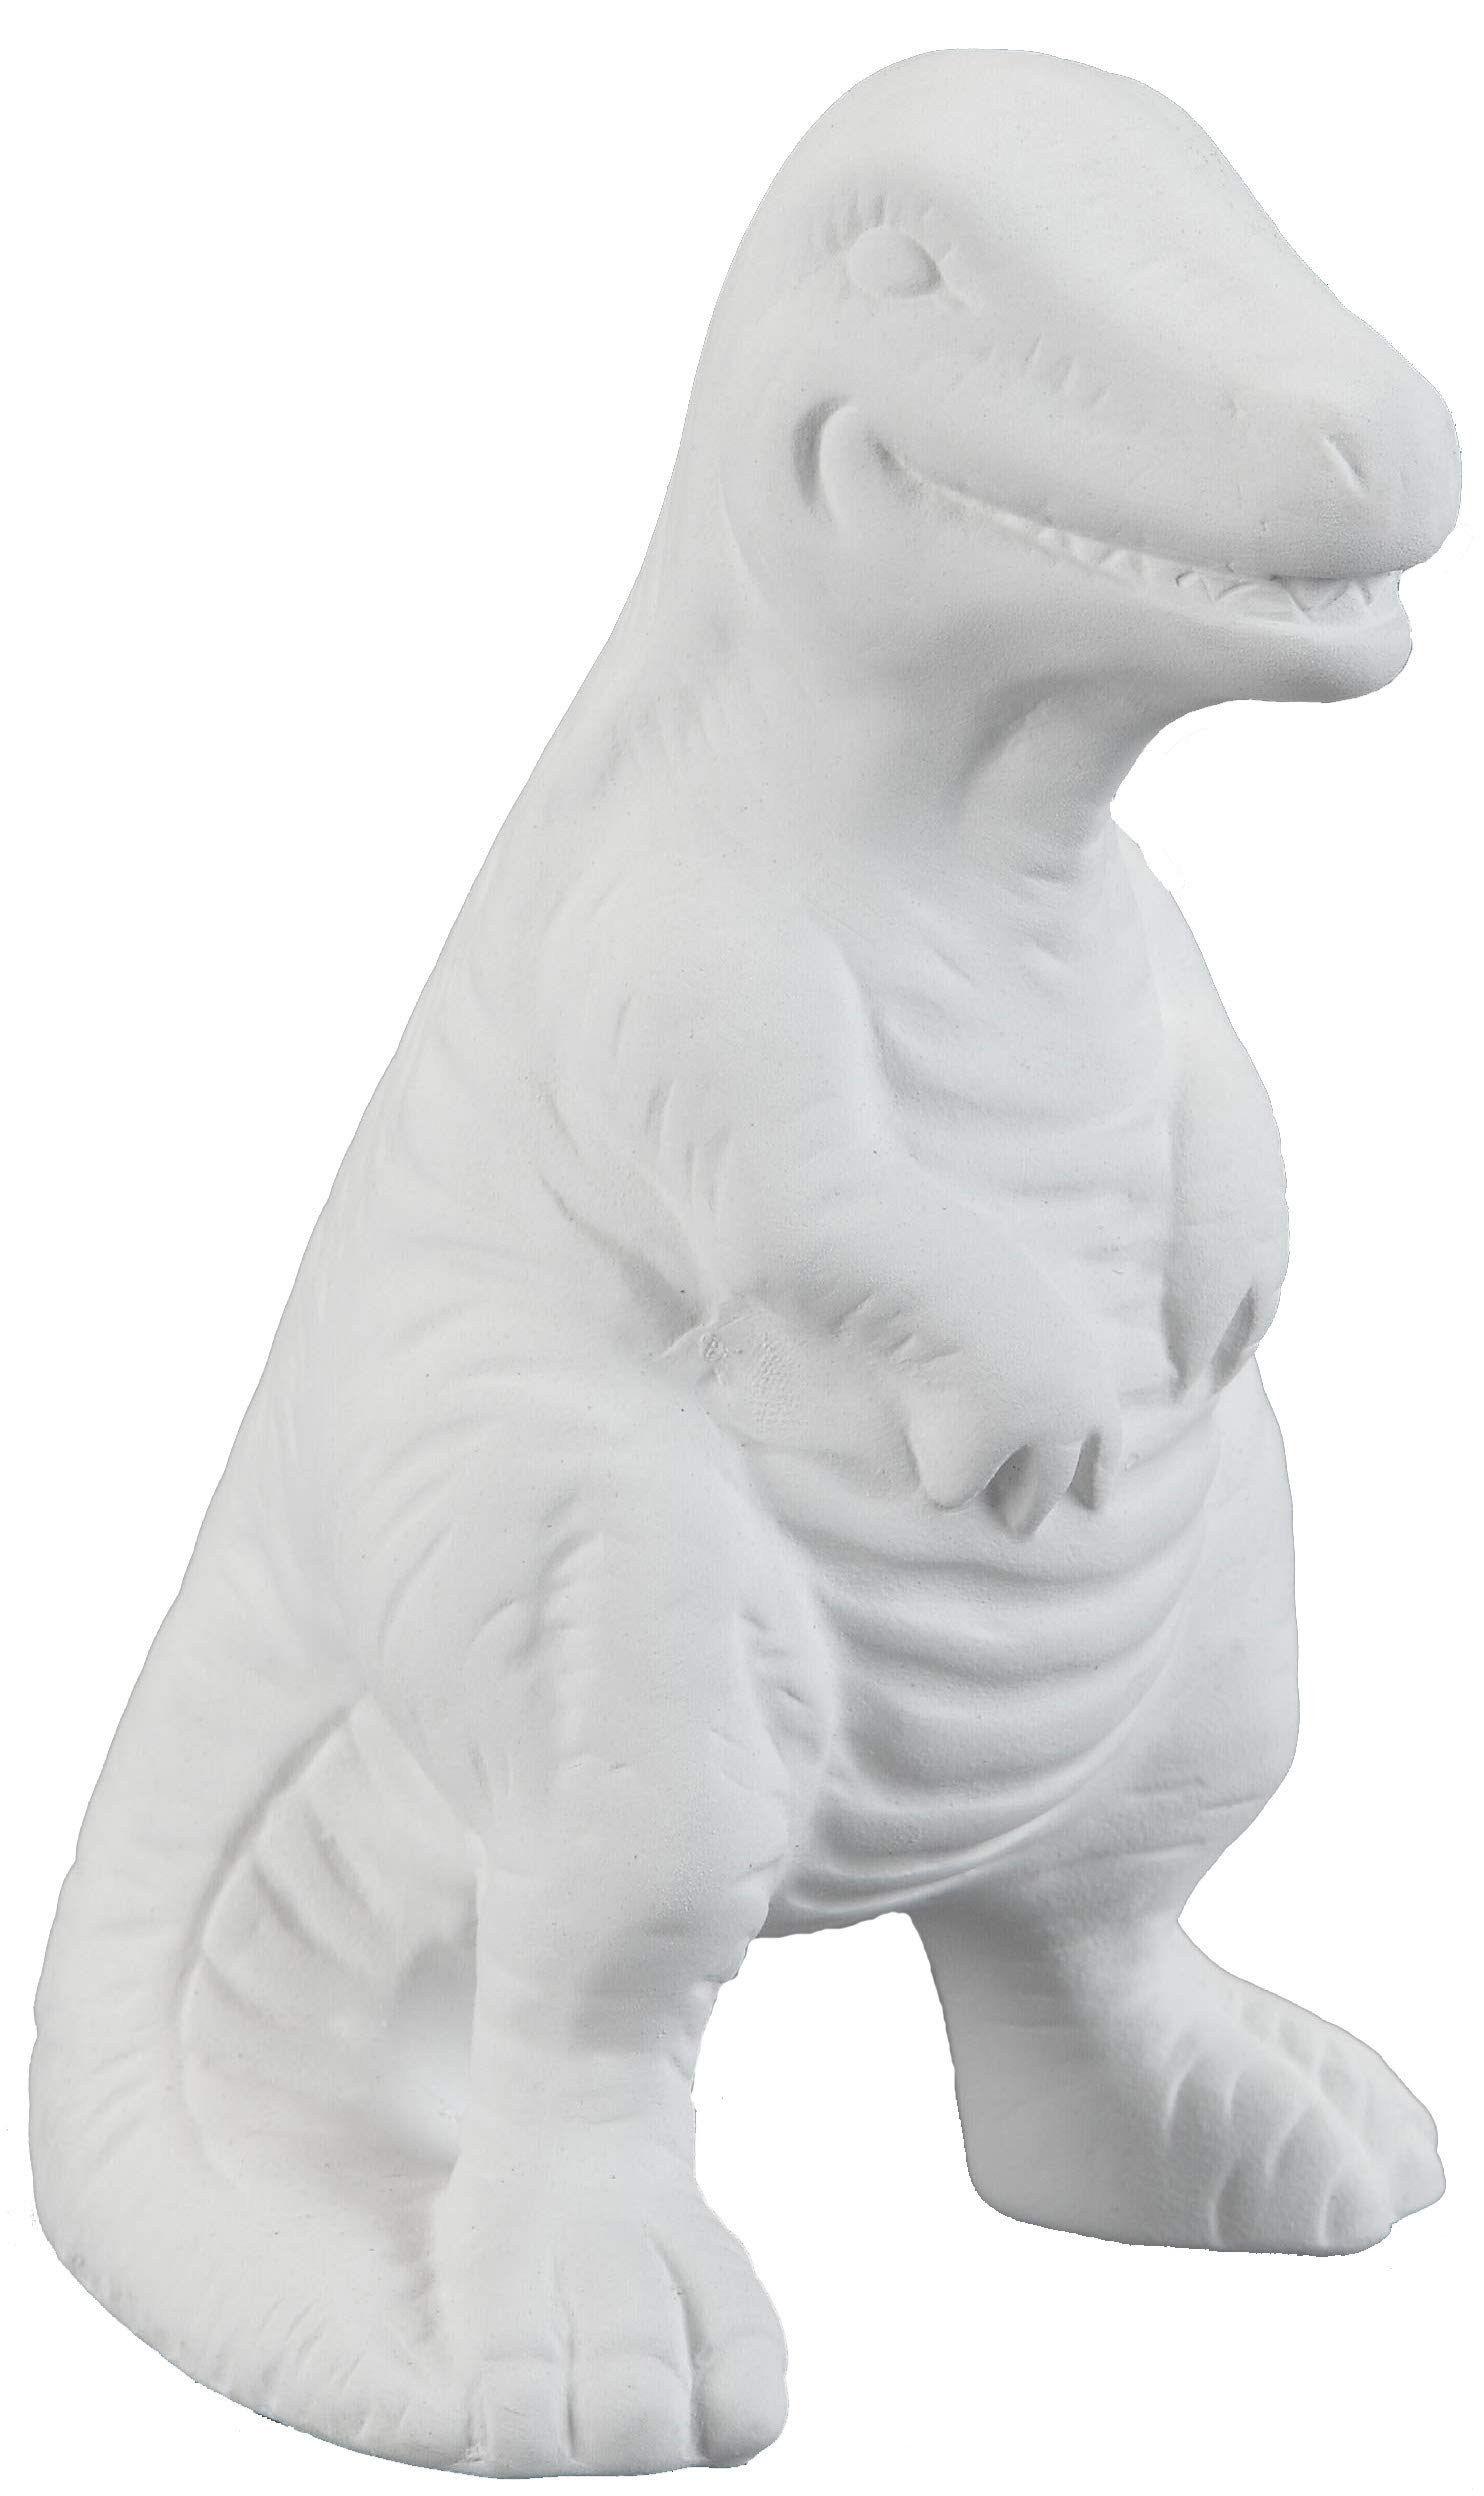 Creative Hobbies T-Rex Dinosaur, 5.5 Inch High, Case of 12, Unfinished Ceramic Bisque, with How to Paint Your Own Pottery Booklet